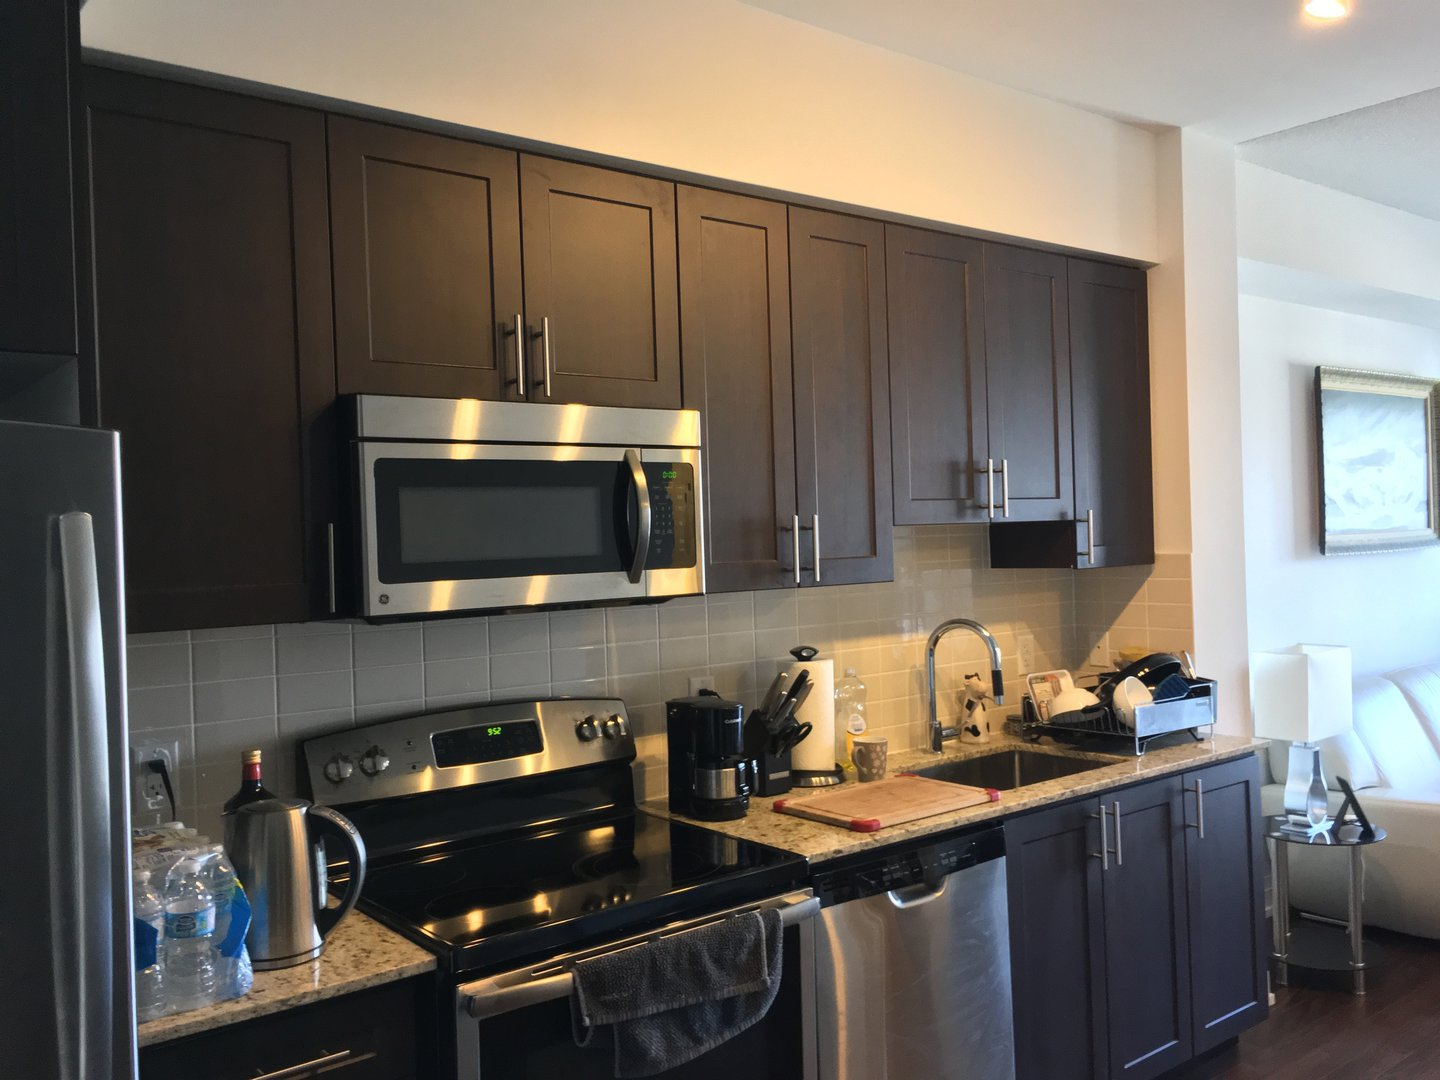 Condo for rent at 7161 Yonge Street, Markham, ON. This is the kitchen with stainless steel and hardwood floor.